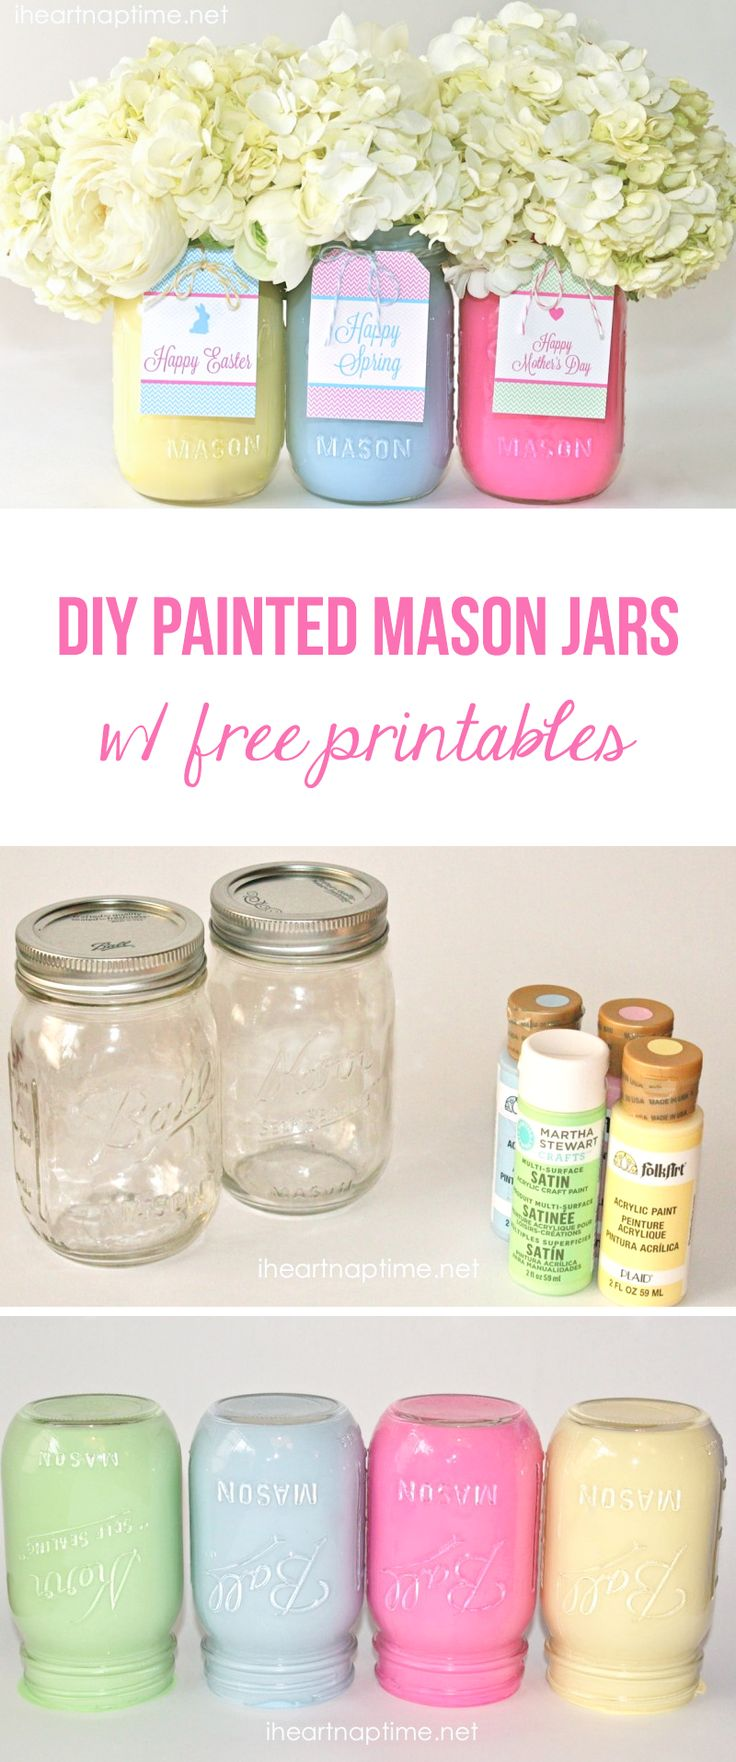 DIY Painted Mason Jars